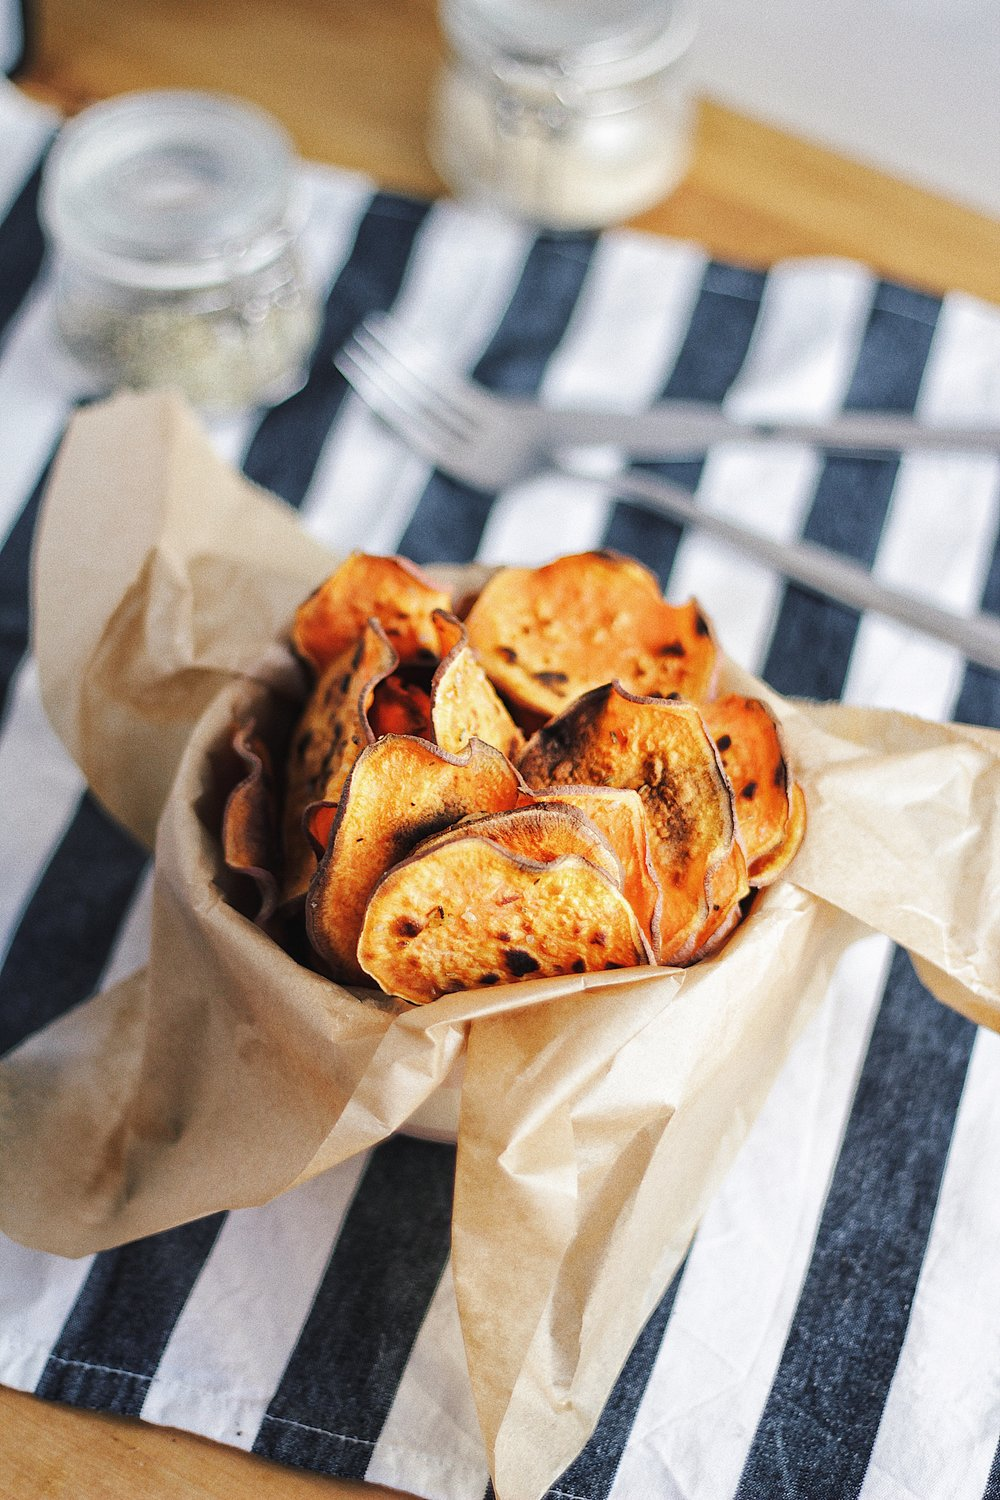 Healthy Baked Sweet Potato Chips - with Rosemary - Recipe - Grain-free, Gluten-free and Sugar-free - Low Carb, Paleo and Keto - Fit Chick Bakery